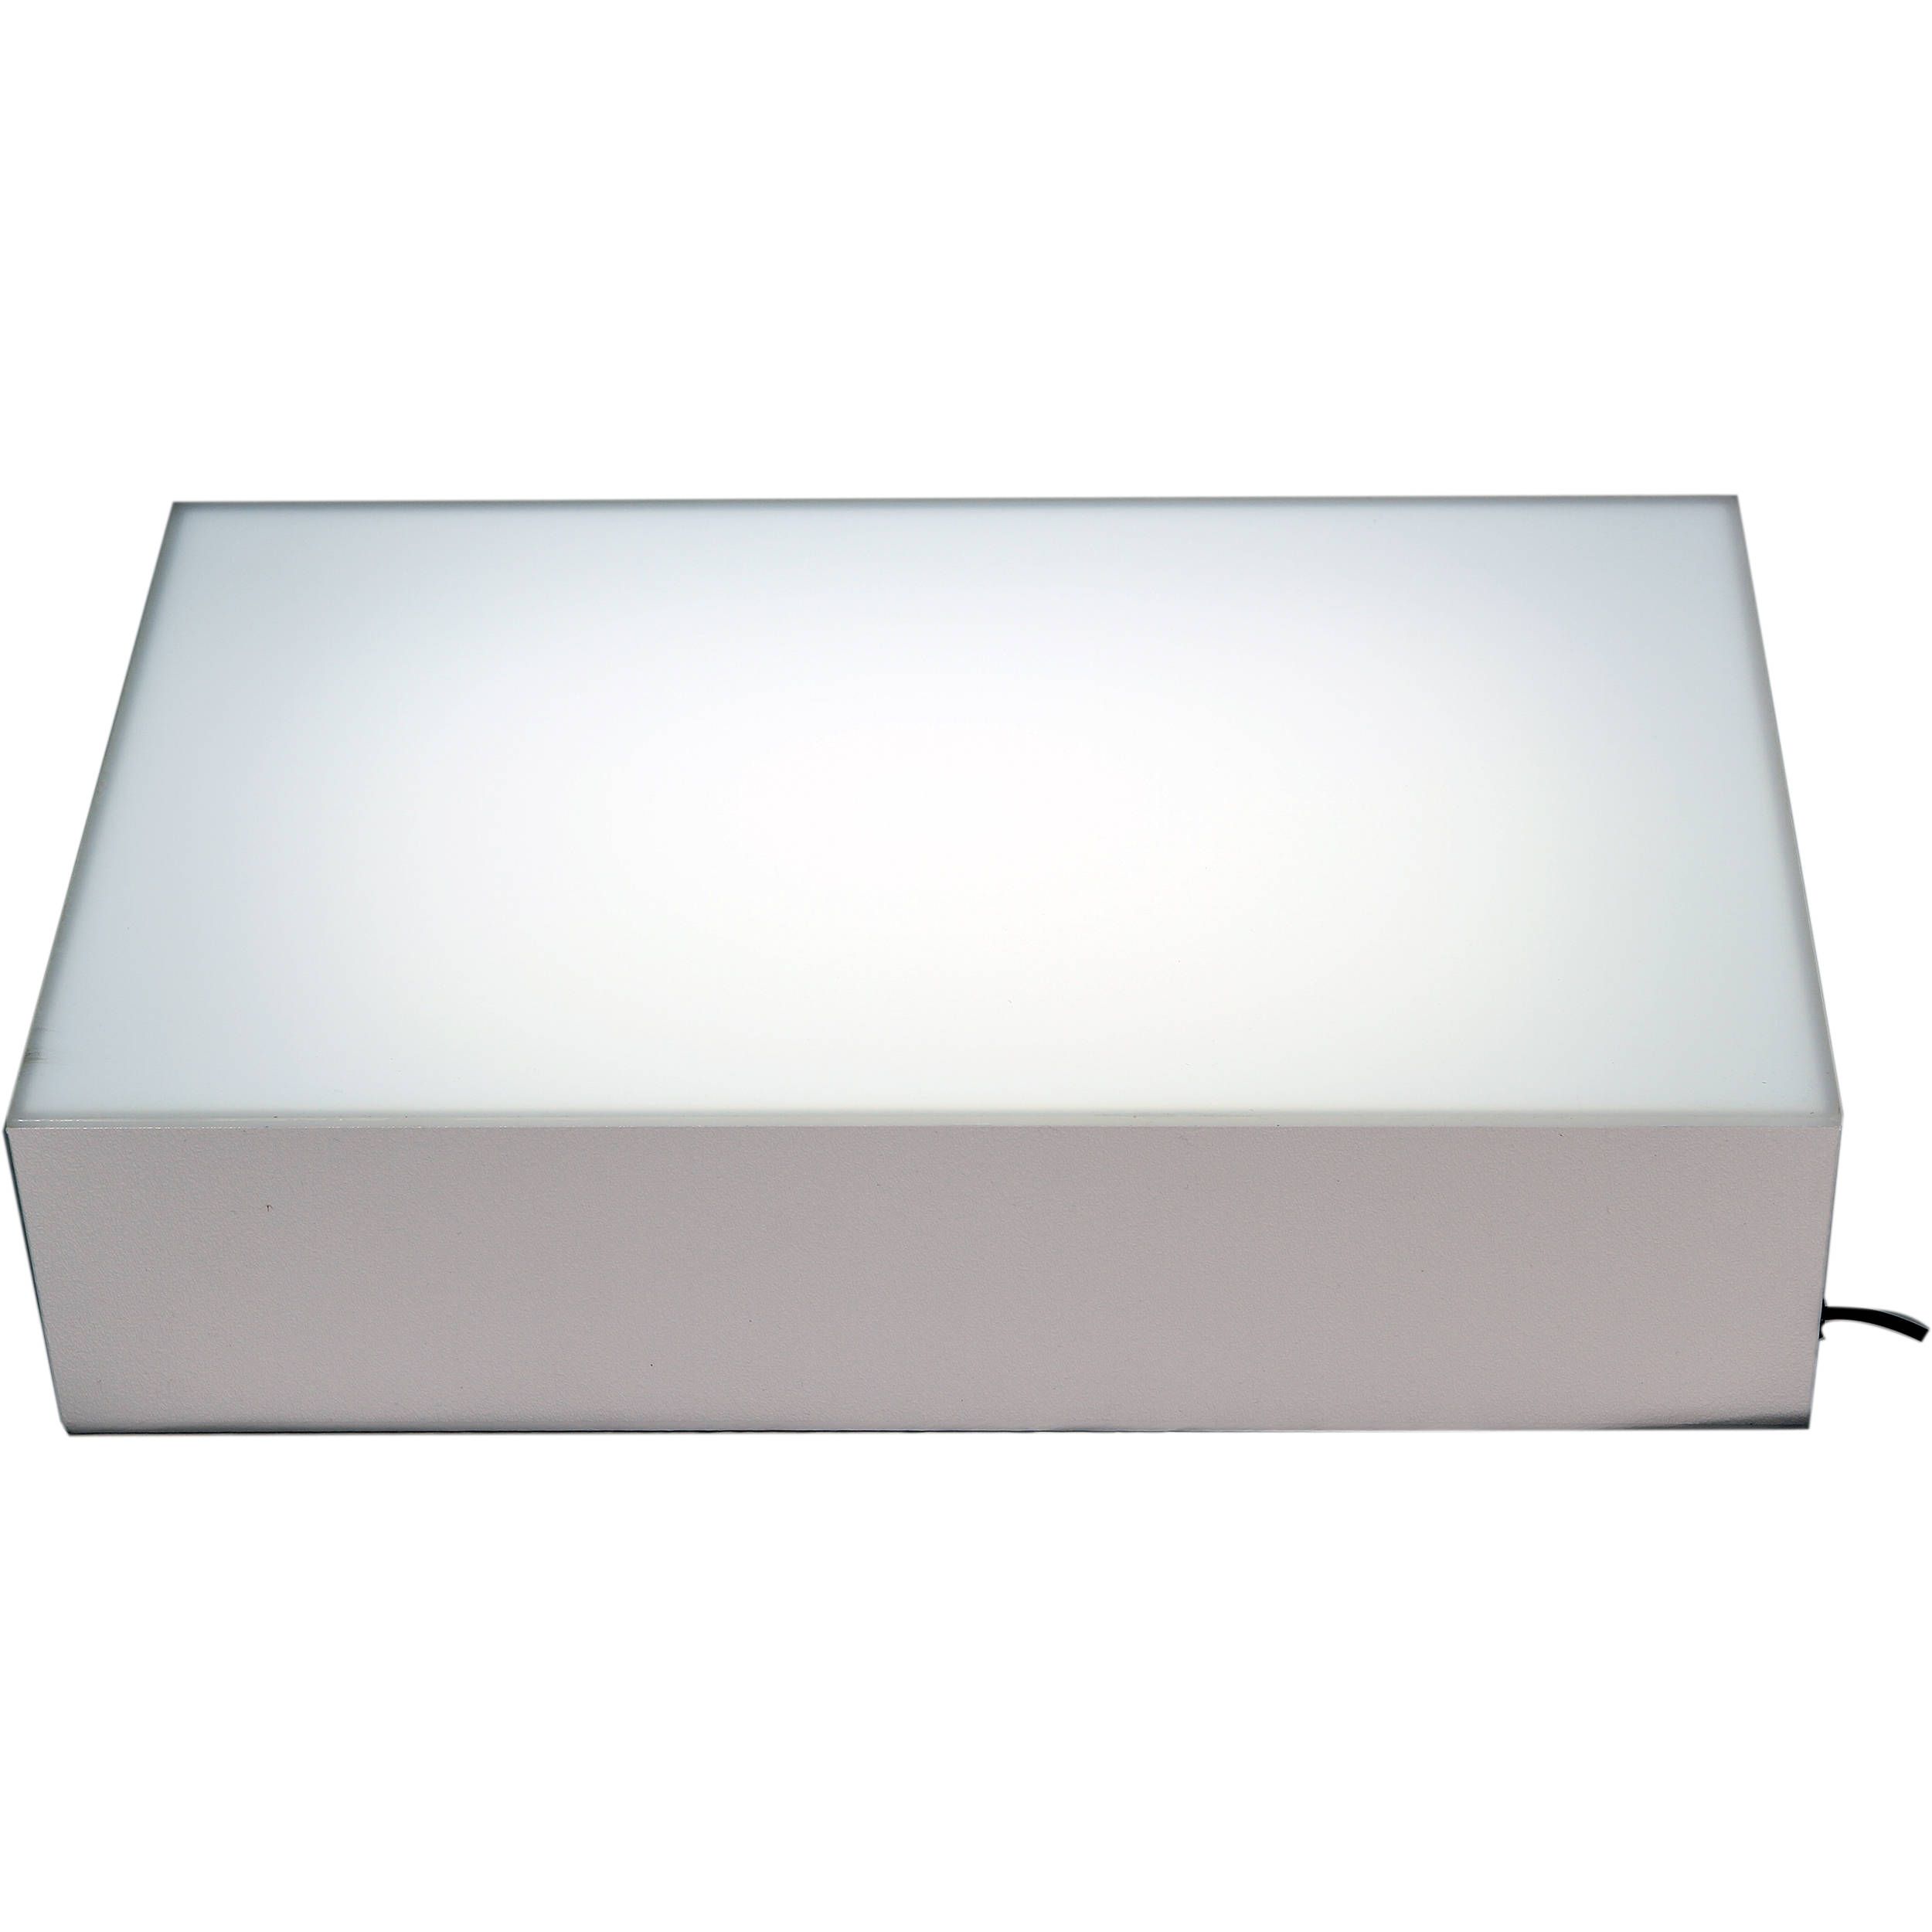 box your original lamp light lighting thumbnail custom products gearbox designs from own design